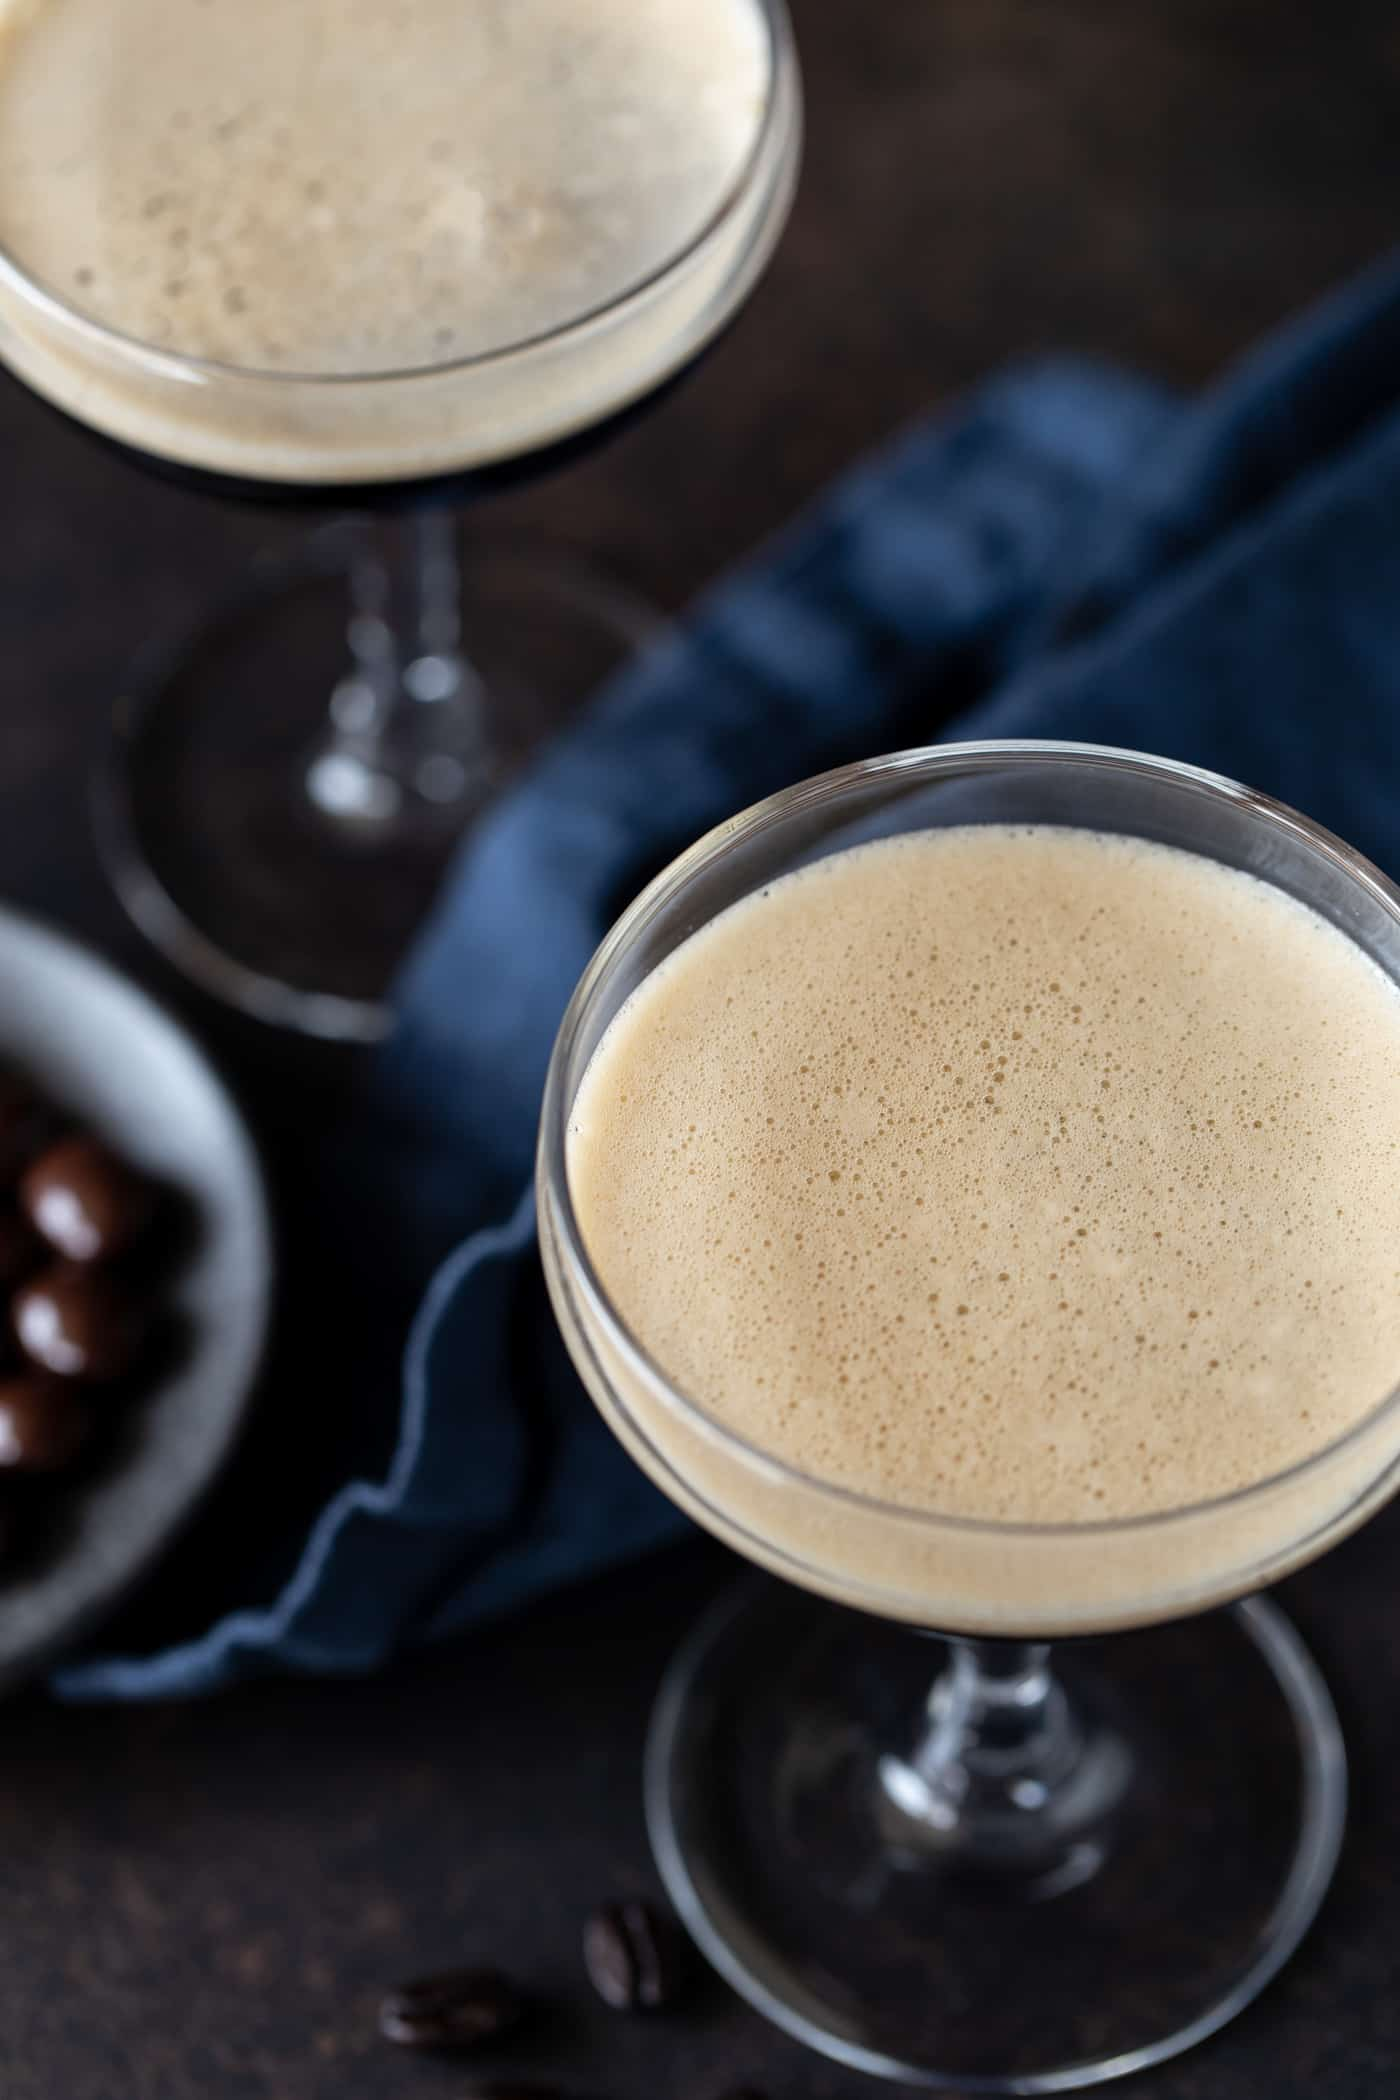 Top down image of two martini glasses with frothy tops on a dark background with a navy blue linen napkin.